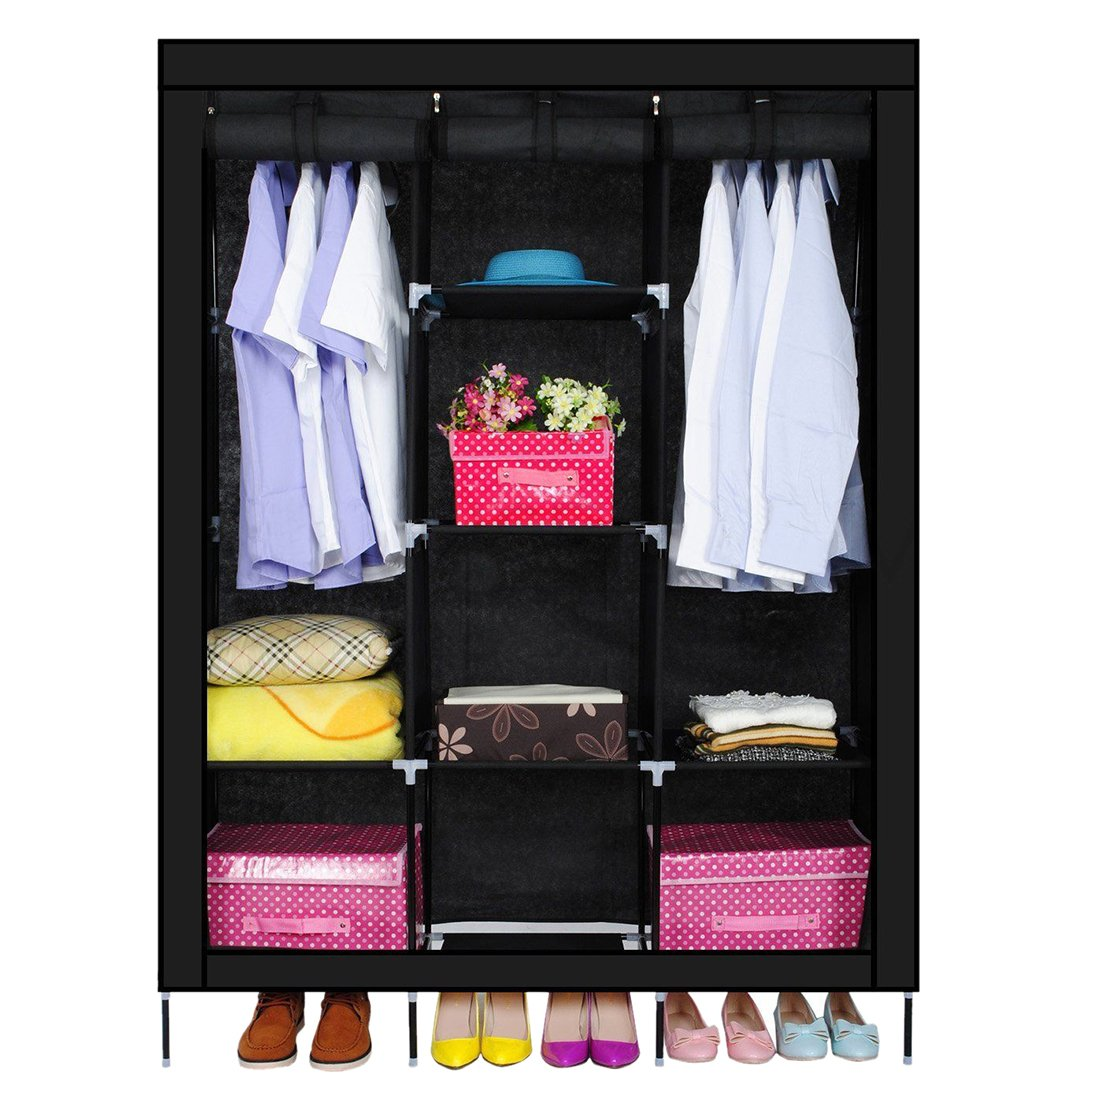 SODIAL(R) New Triple Nonwovens Wardrobe Home Bedroom Decor Clothes Clothing Storage Wardrobes(black) AEQW-WER-AW134660